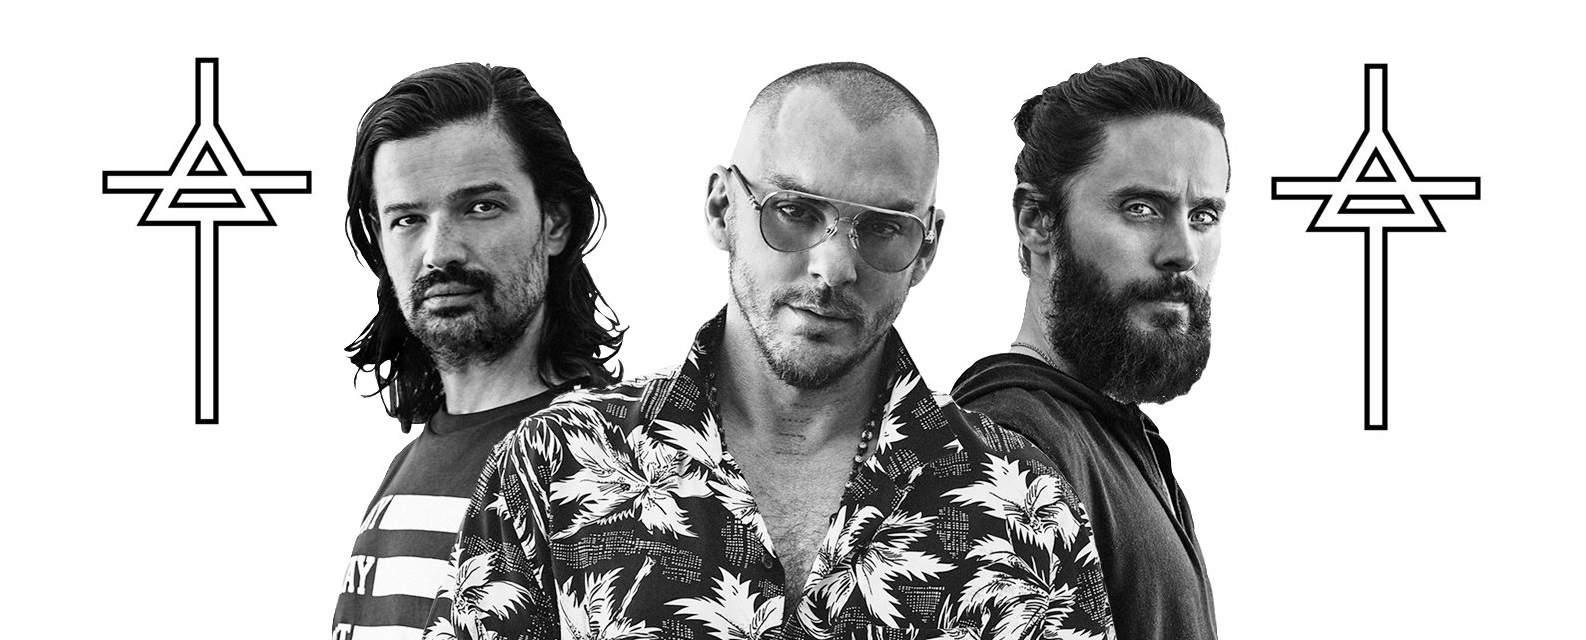 Thirty seconds to mars from raging success to fan exploitive mess music progression we are all well and truly aware that it has to happen at one point or another bands cant produce the same album over and over again m4hsunfo